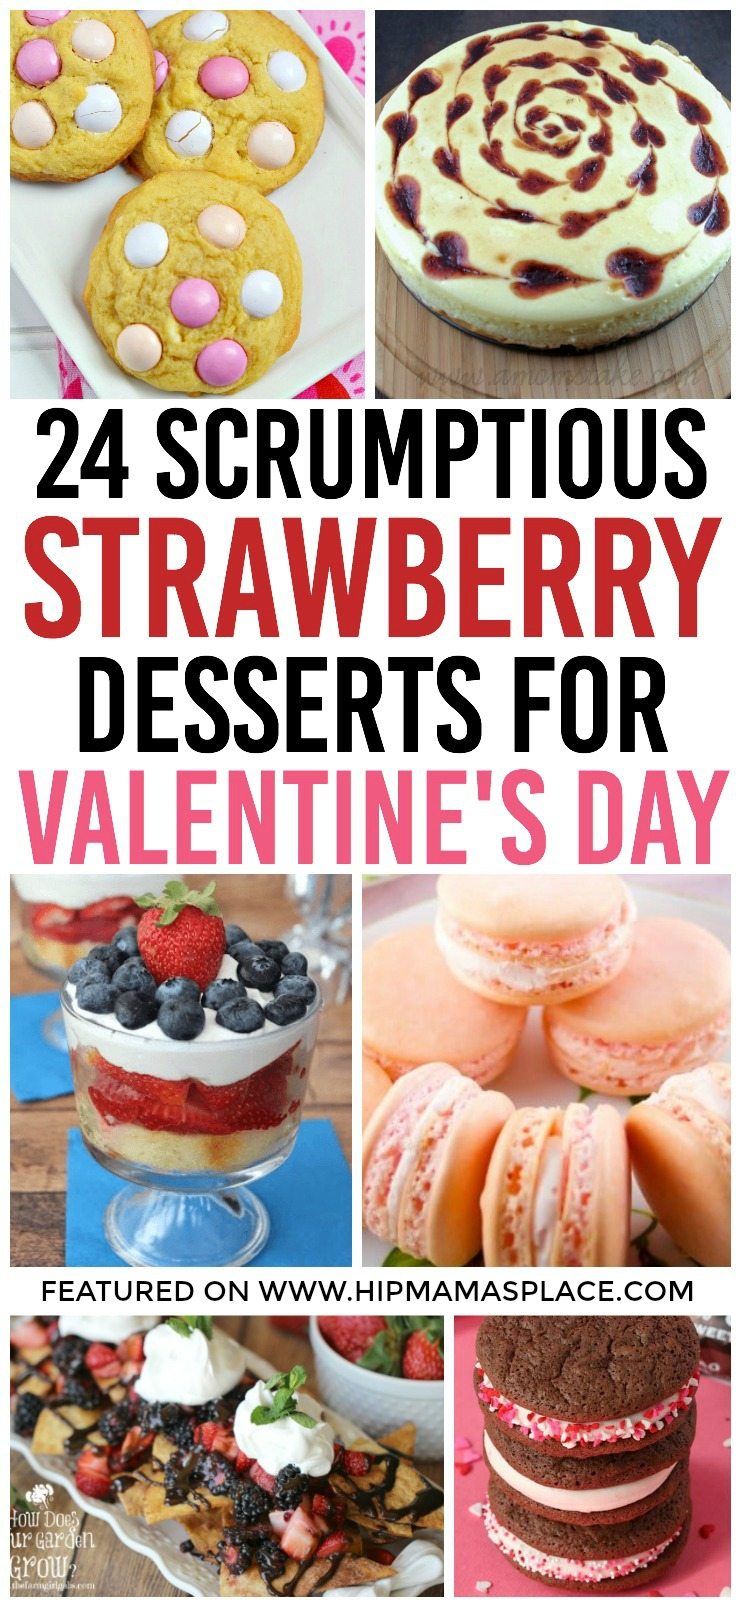 Looking for delicious treats for yourself or your sweetheart this February? Try some of these 24 strawberry desserts for Valentine's Day! #ValentinesDay #desserts #HipMamasPlace #Valentinesdesserts